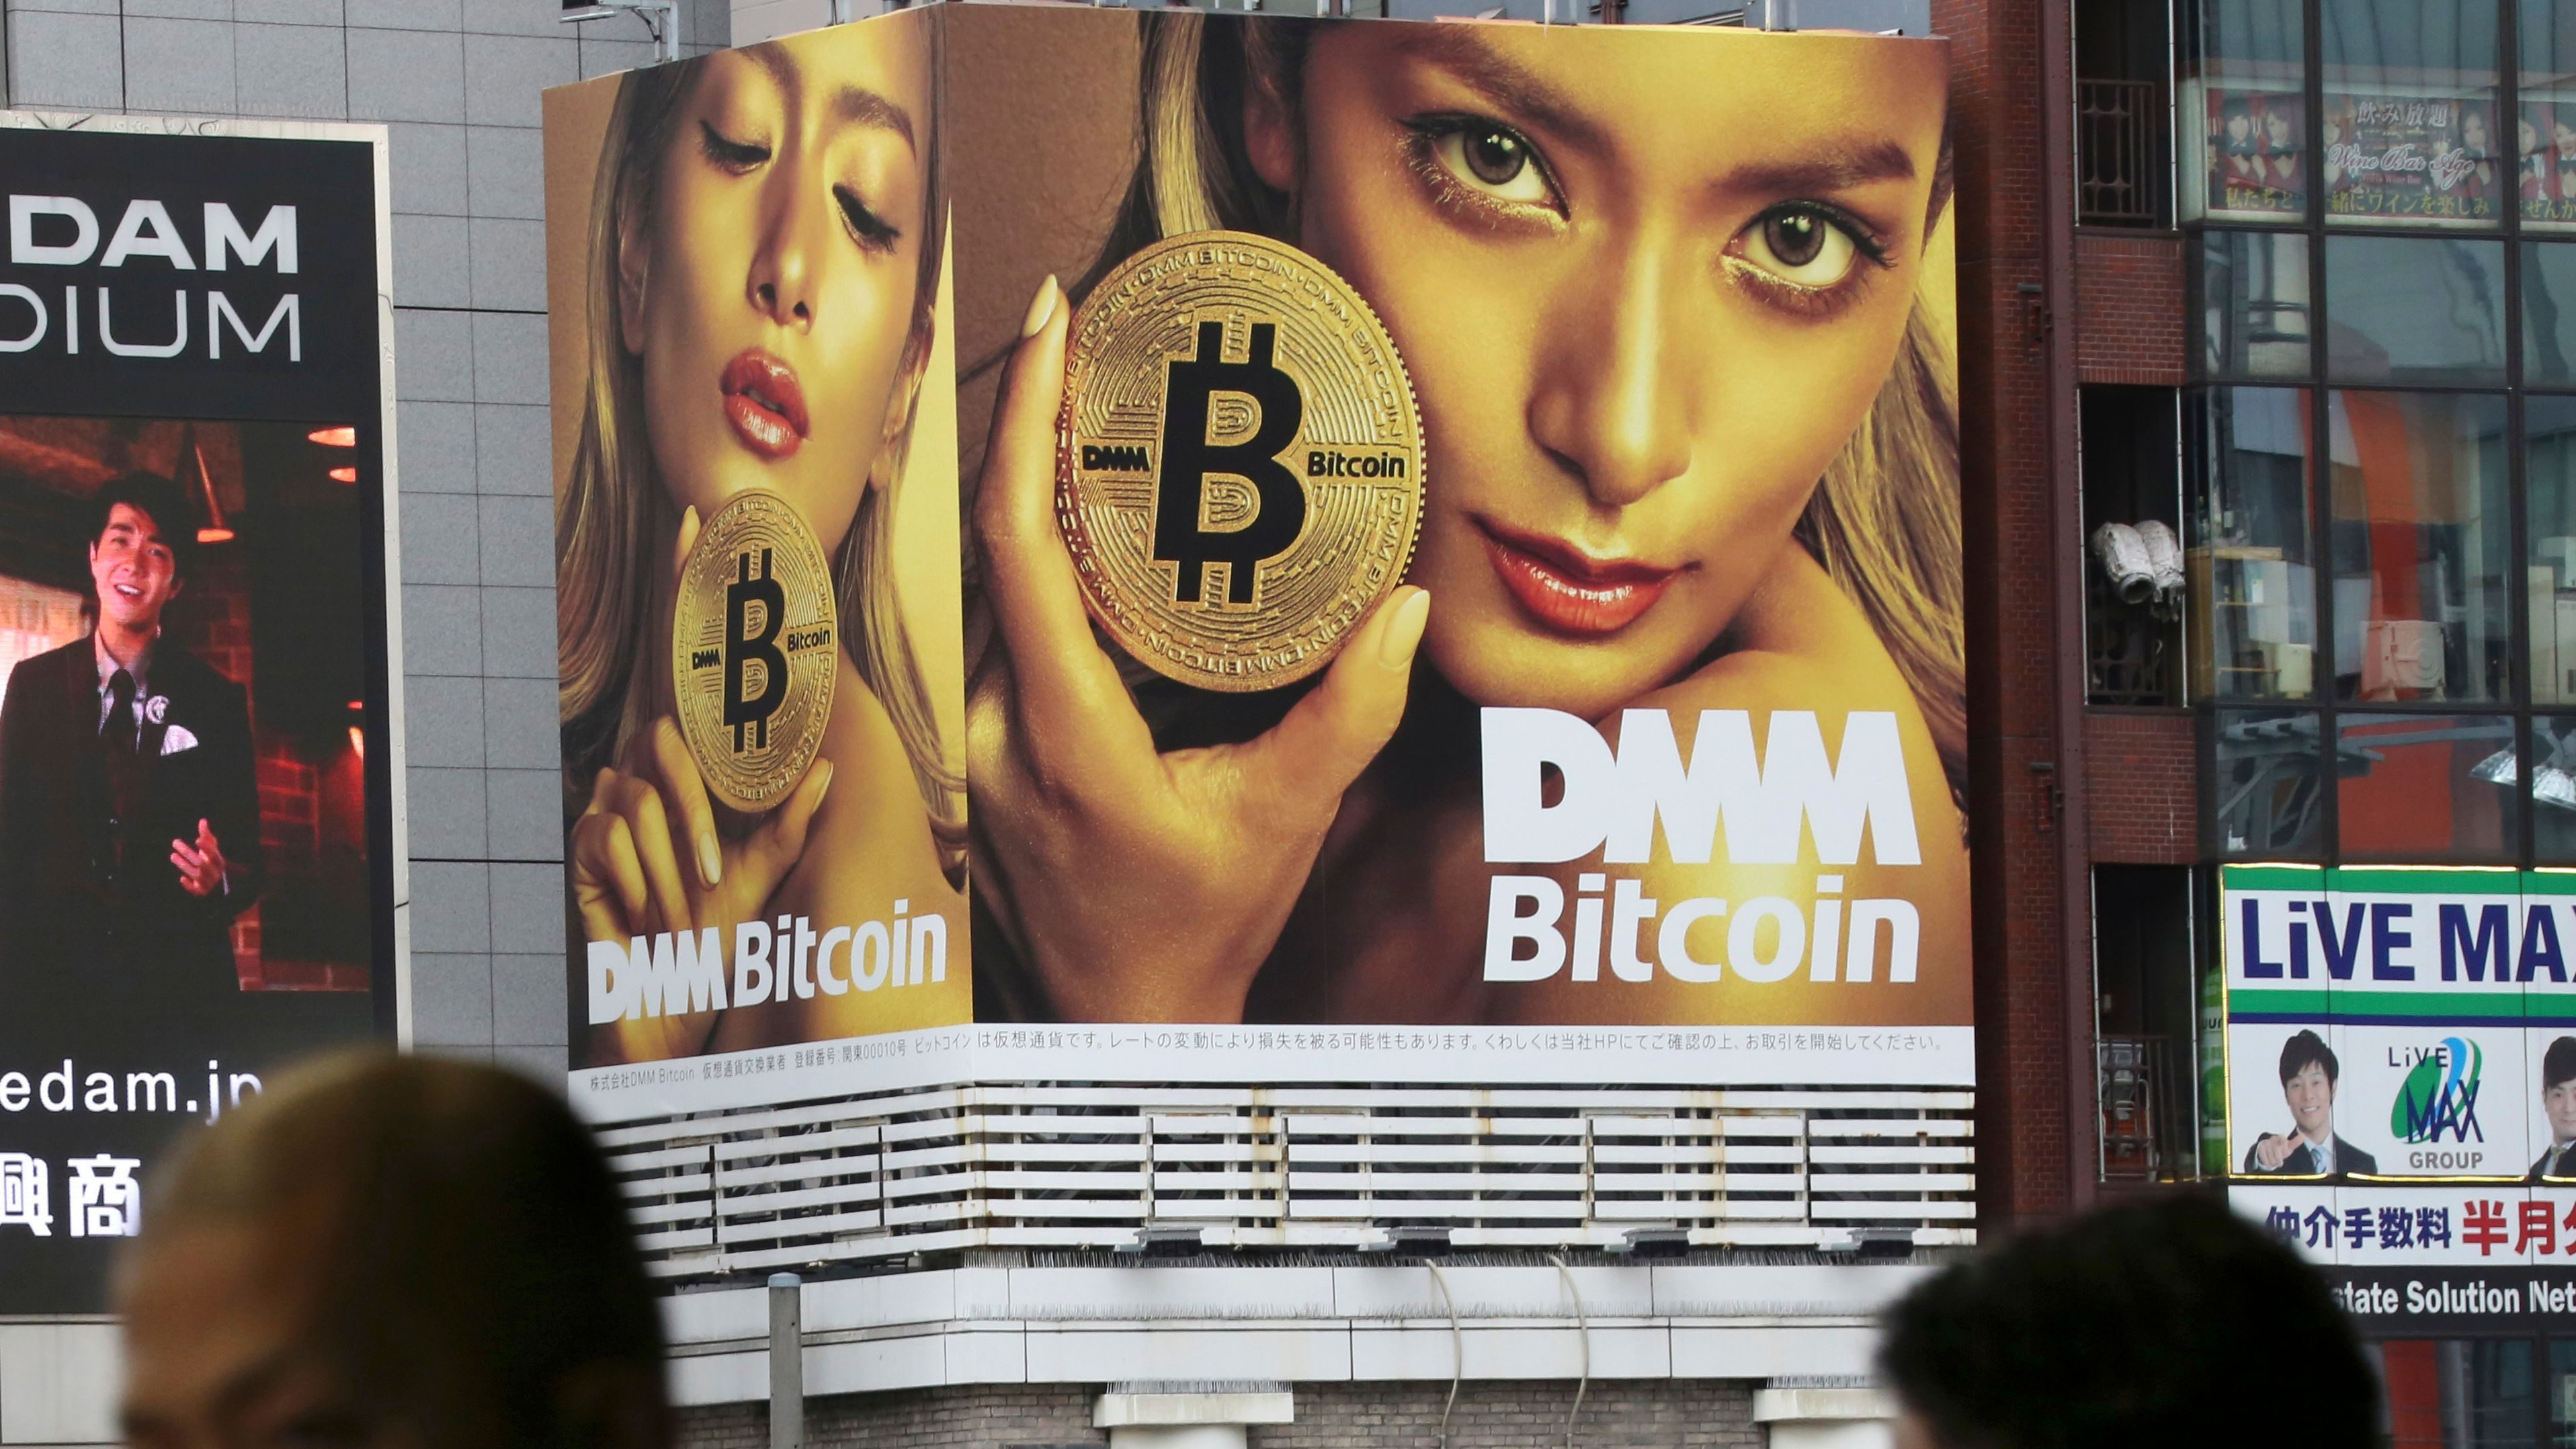 A huge advertisement of Bitcon is displayed near a train station in Tokyo Monday, Jan. 29, 2018. Blockchain is a decentralized technology that can make transactions safe and secure, but crypto-currency exchanges that trade bitcoins and other virtual currencies that are based on this technology have been hacked because they are not working on secure networks.